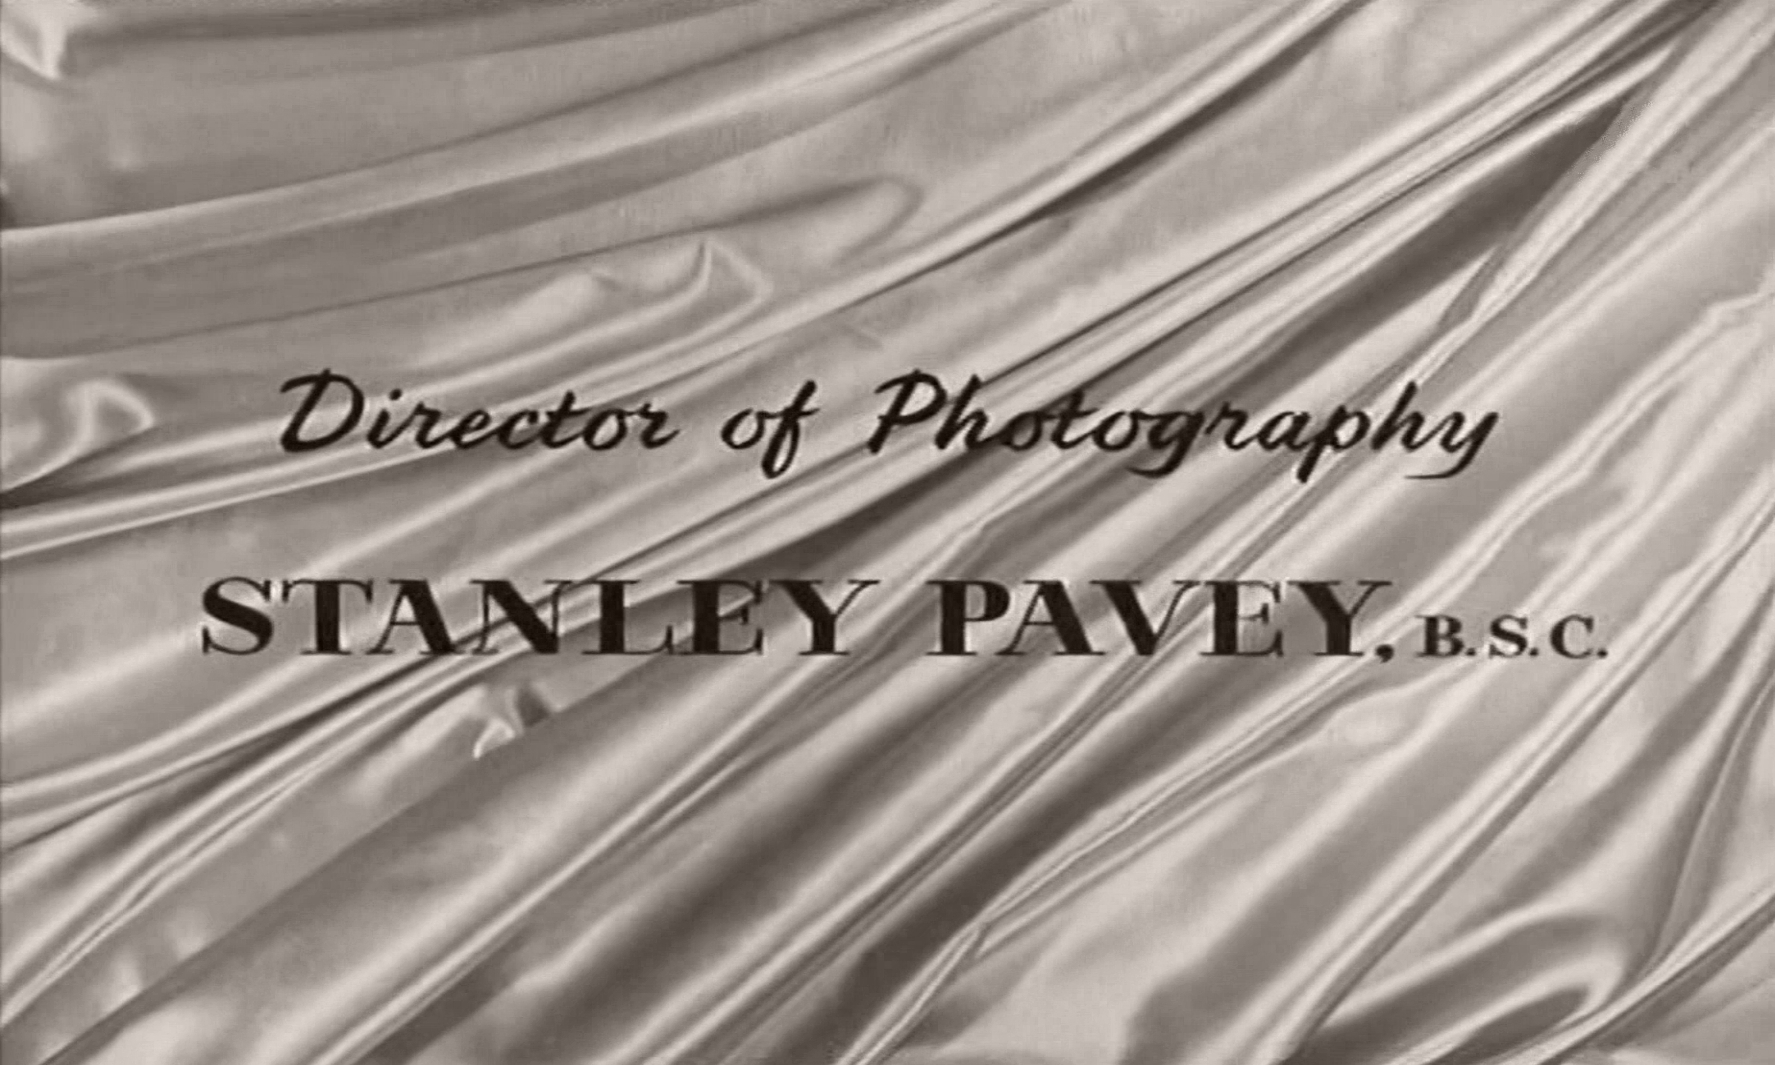 Main title from The Naked Truth (1957) (9).  Director of Photography Stanley Pavey BSC